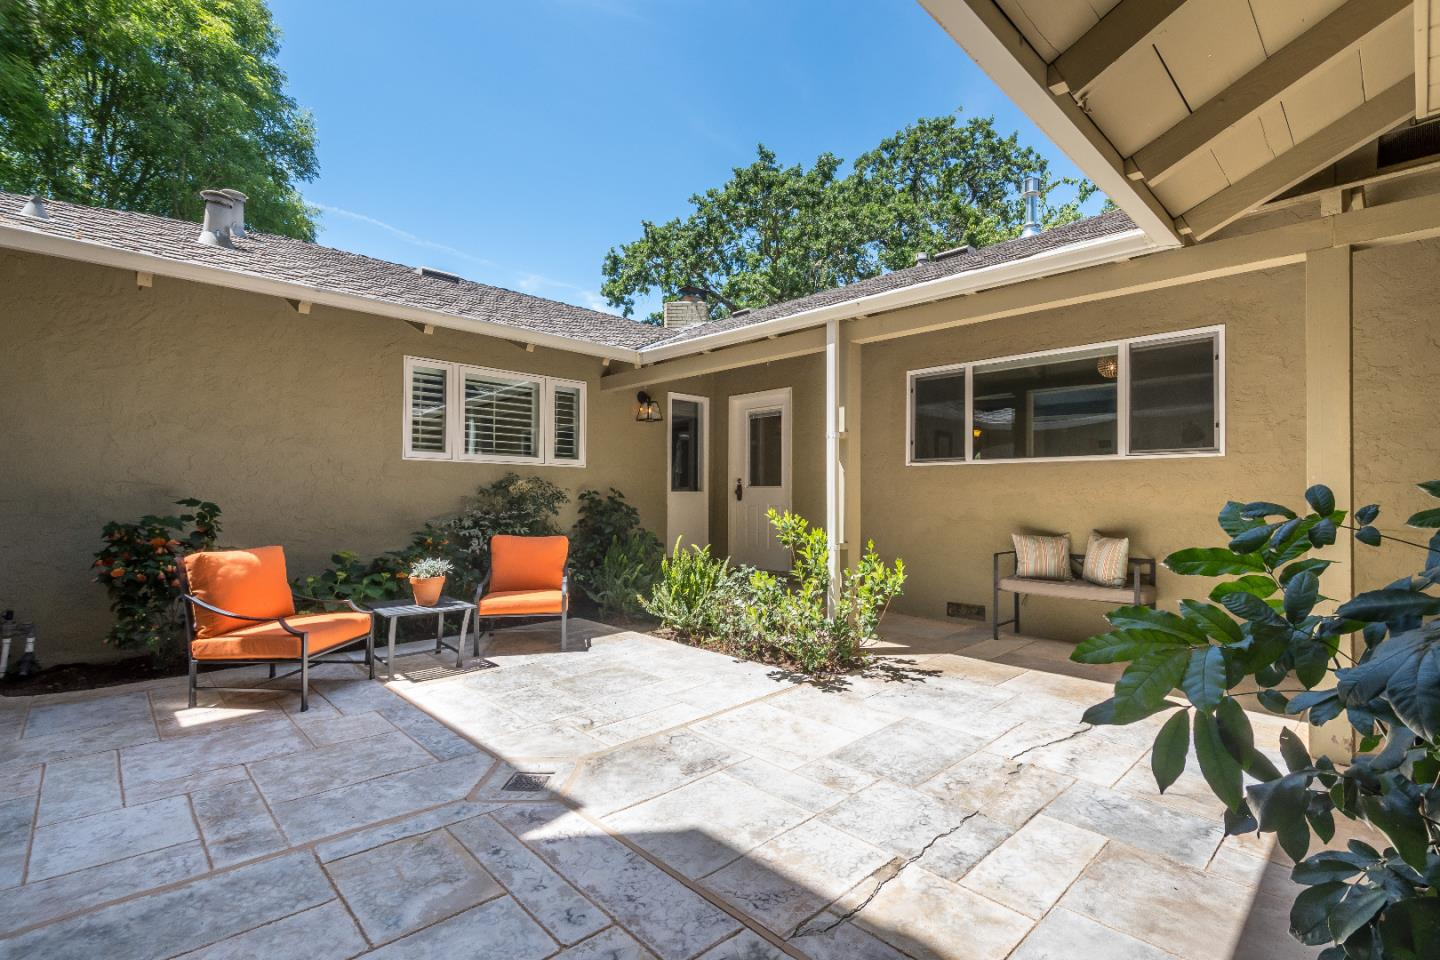 Additional photo for property listing at 1390 Westridge Dr  PORTOLA VALLEY, CALIFORNIA 94028